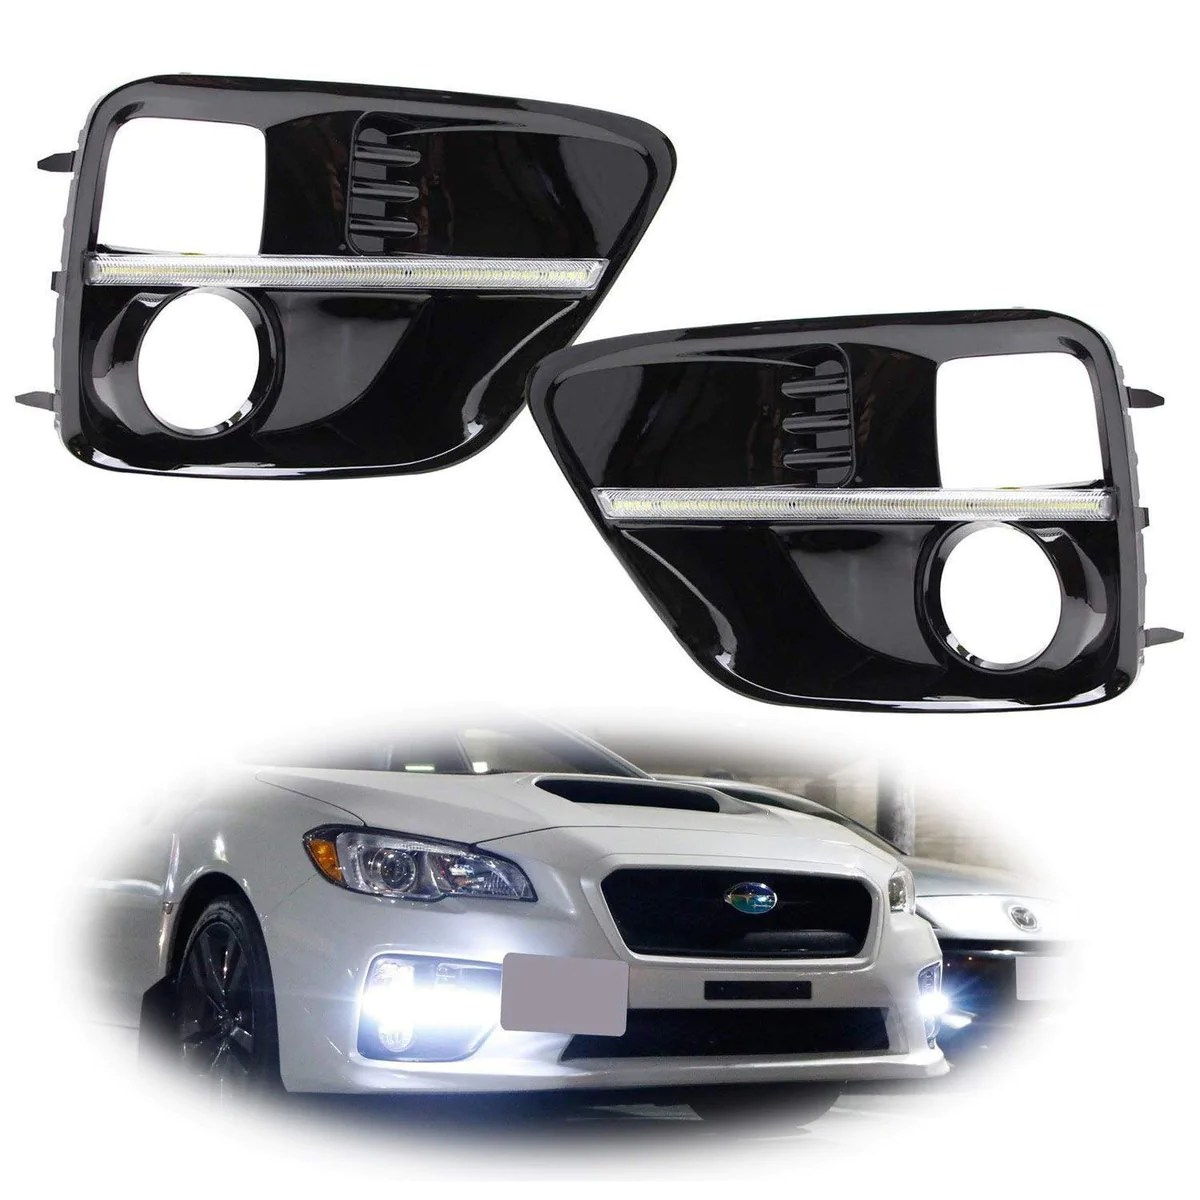 small resolution of xenon white or switchback led daytime running lights for 2015 2017 subaru wrx sti w jdm style piano black finish fog lamp bezels xenon white led as drl